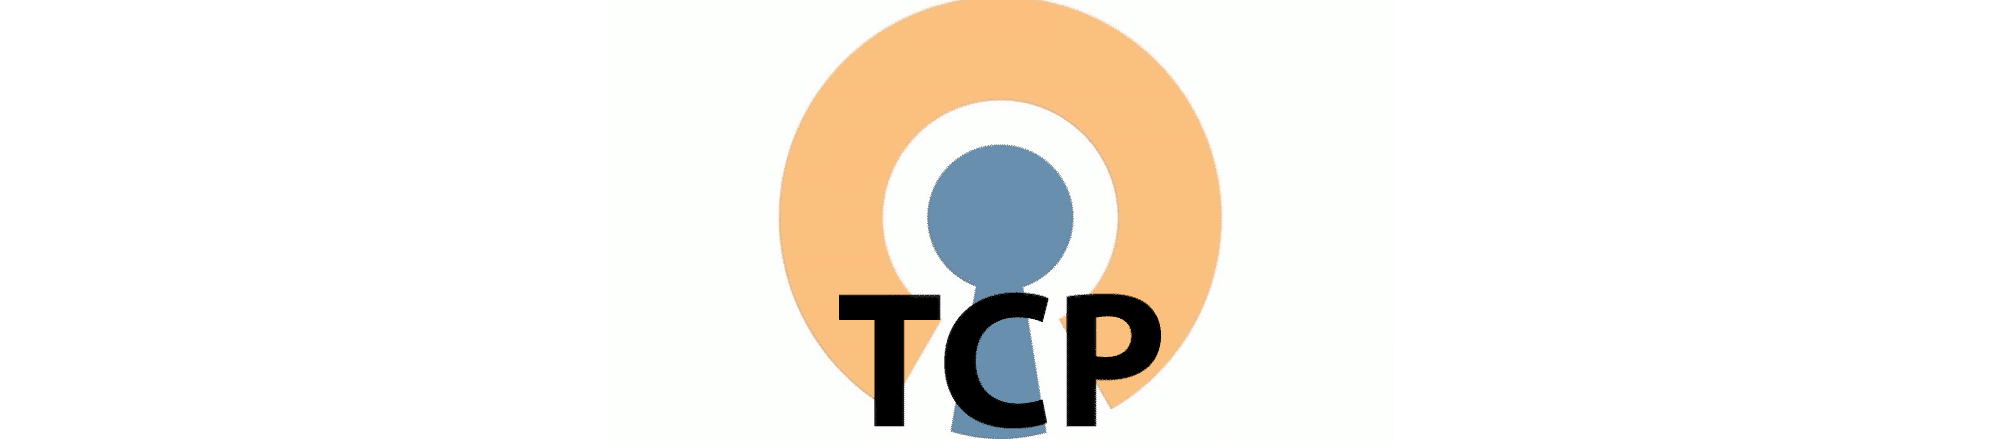 Why should I use TCP with OpenVPN